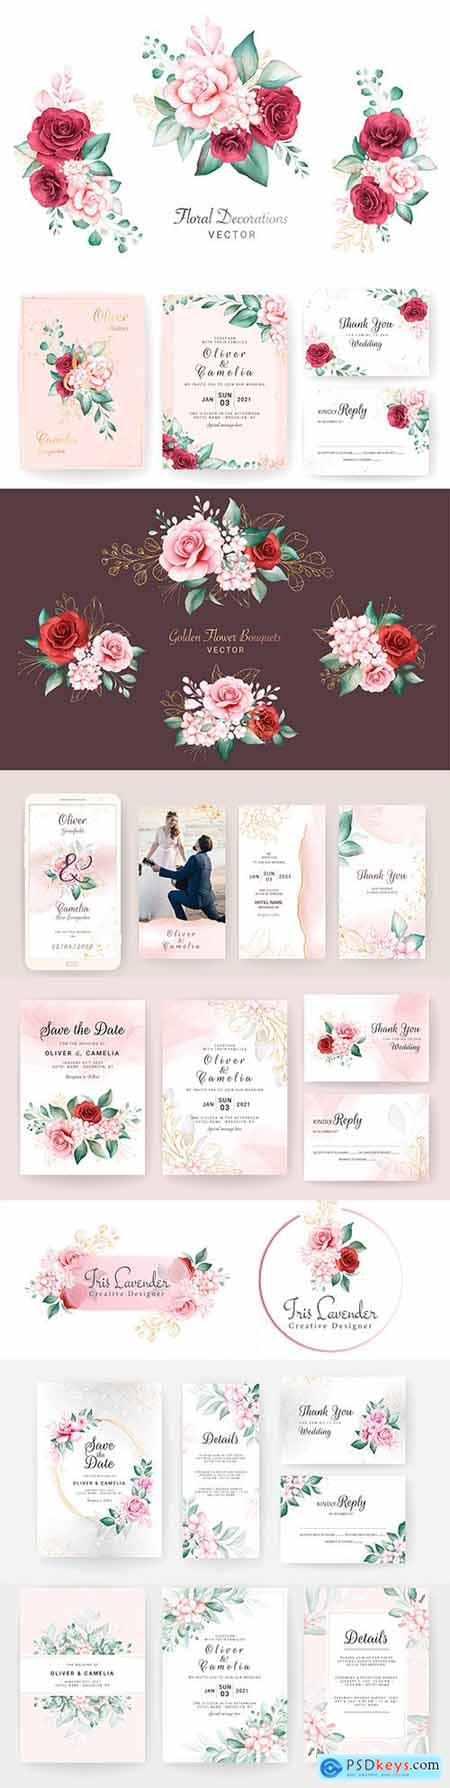 Watercolor bouquets wedding invitation and logo design